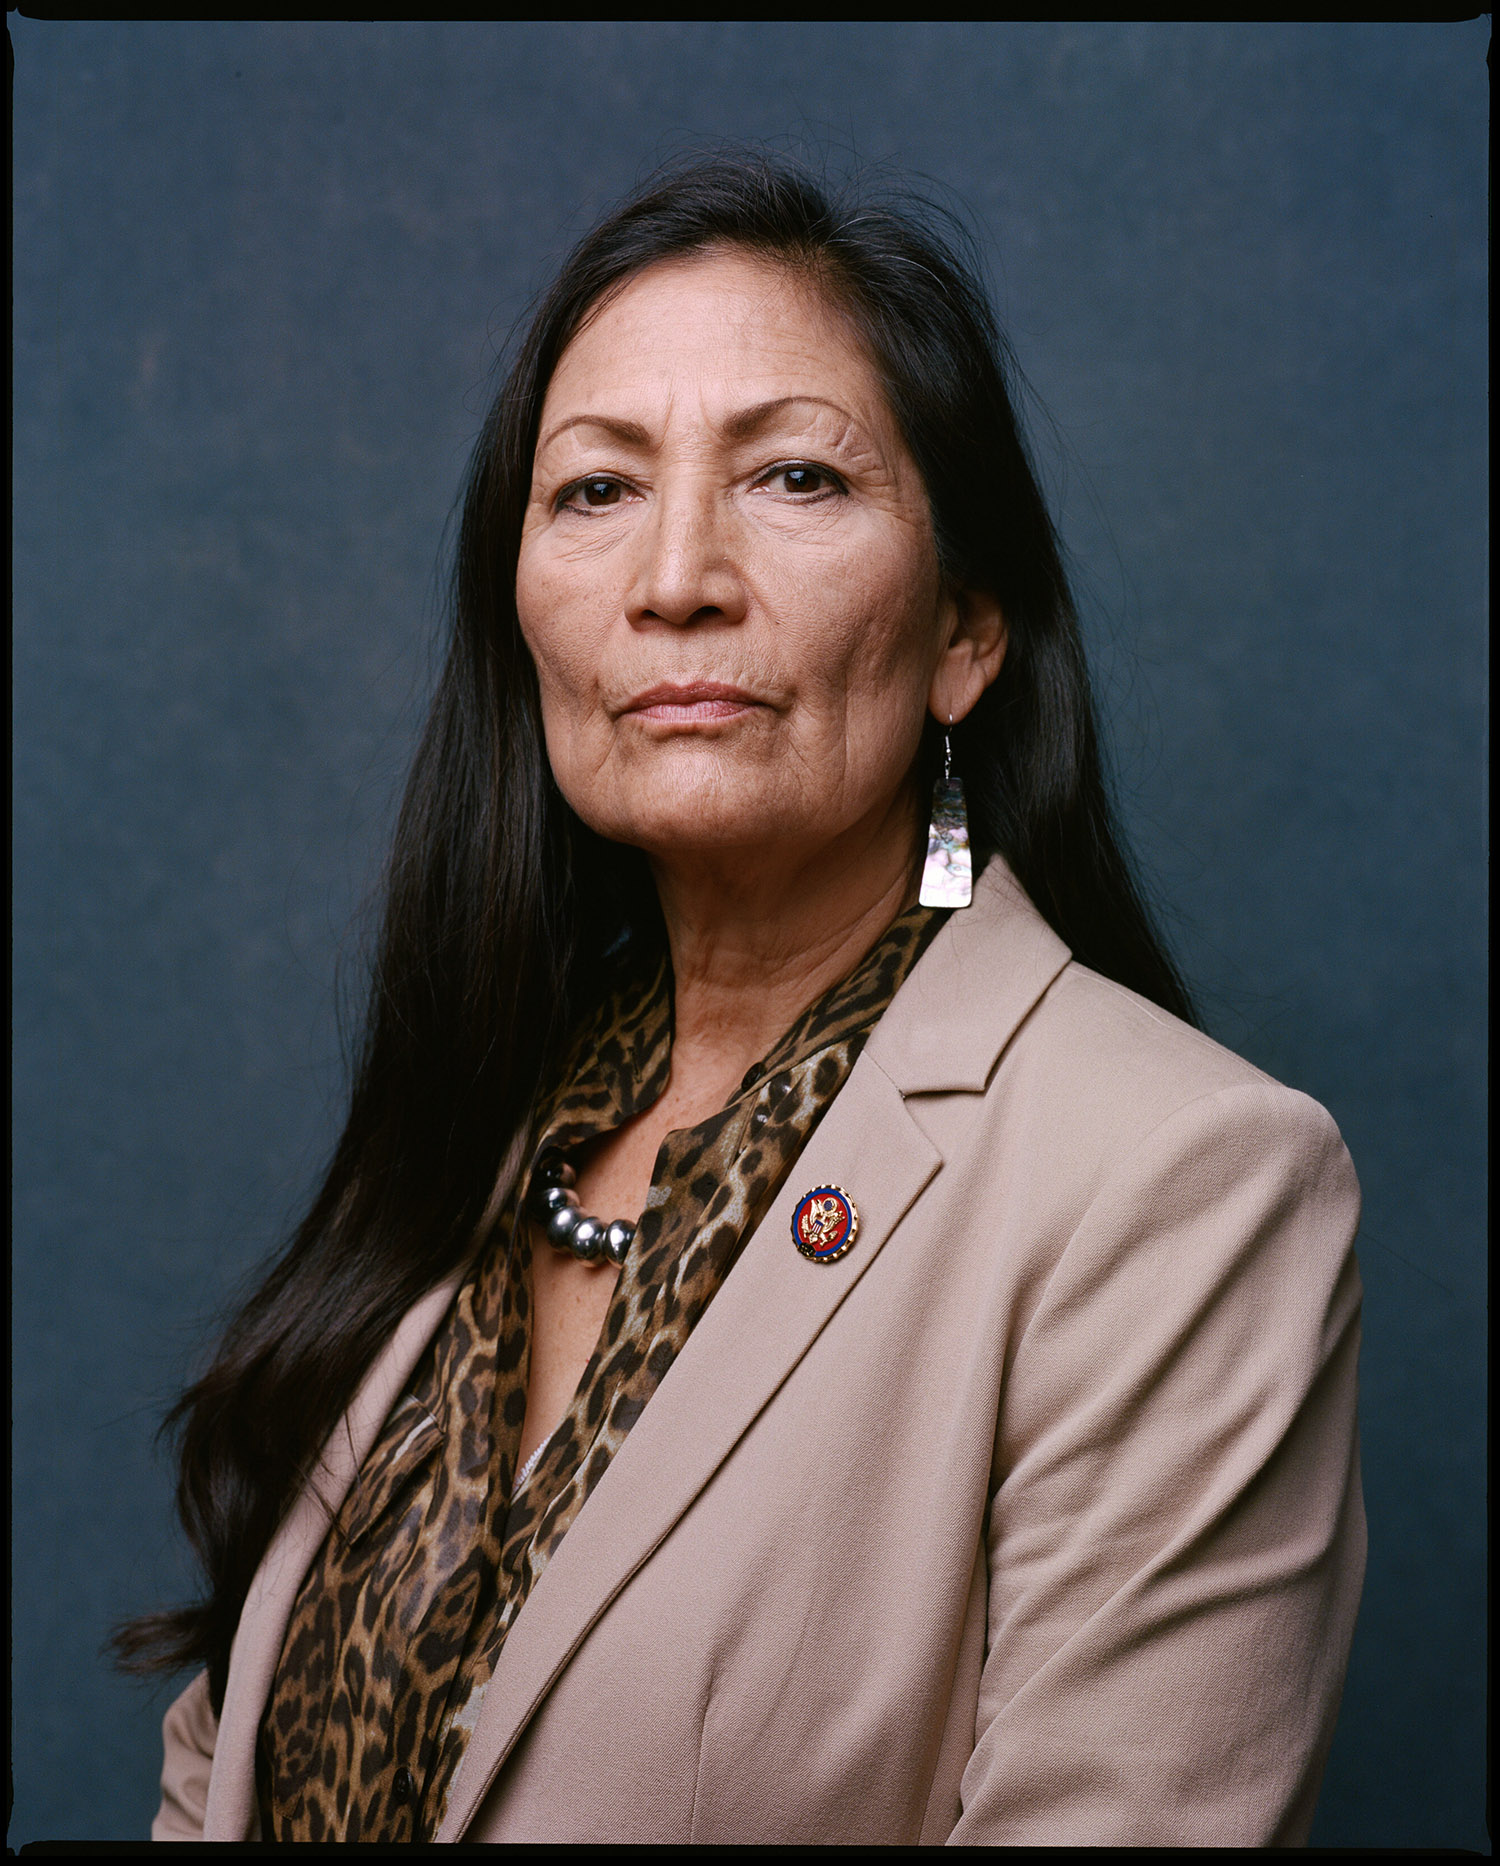 ***HOLD FOR WOMEN IN CONGRESS PROJECT, CONTACT MARISA SCHWARTZ TAYLOR*** Deb Haaland